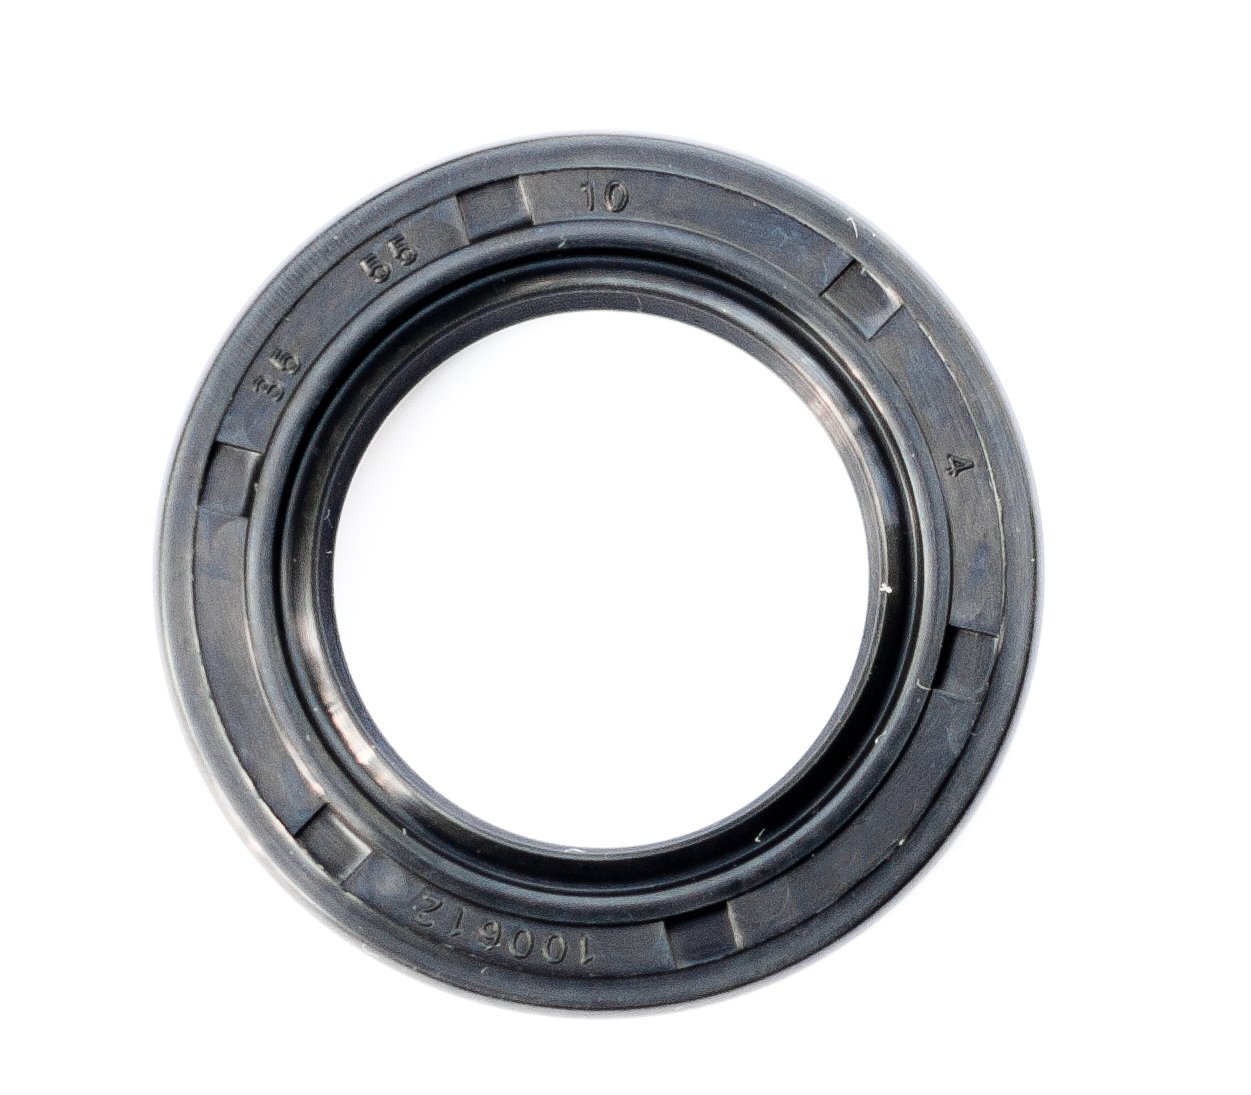 Single Metal Case w//Nitrile Rubber Coating 95mmx125mmx13mm 5 PCS Oil Seal Grease Seal TC  EAI Double Lip w//Garter Spring 3.740x4.921x0.512 Oil Seal 95X125X13